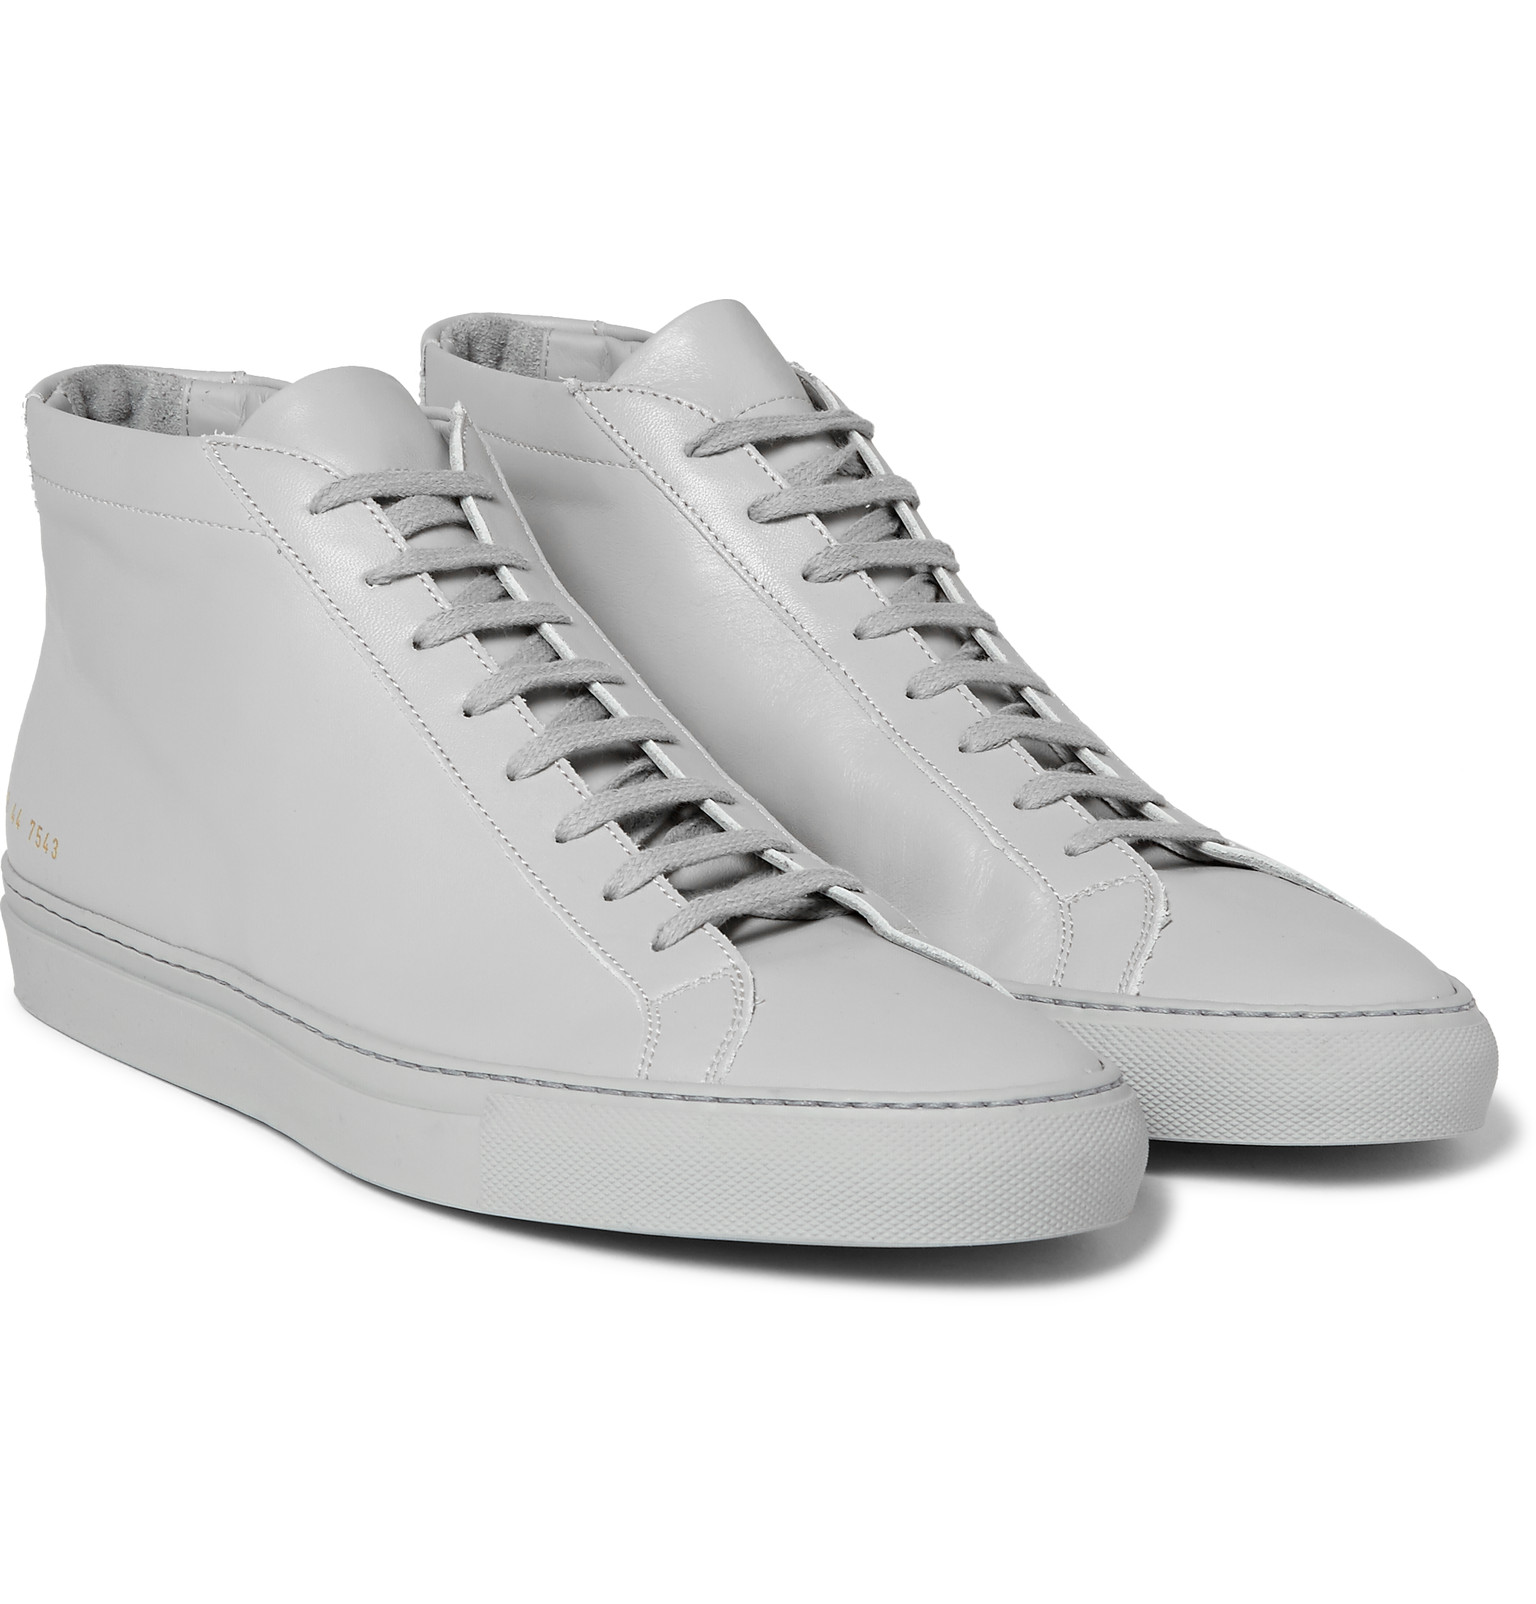 8545eead3d941 Common Projects - Original Achilles Leather High-Top Sneakers